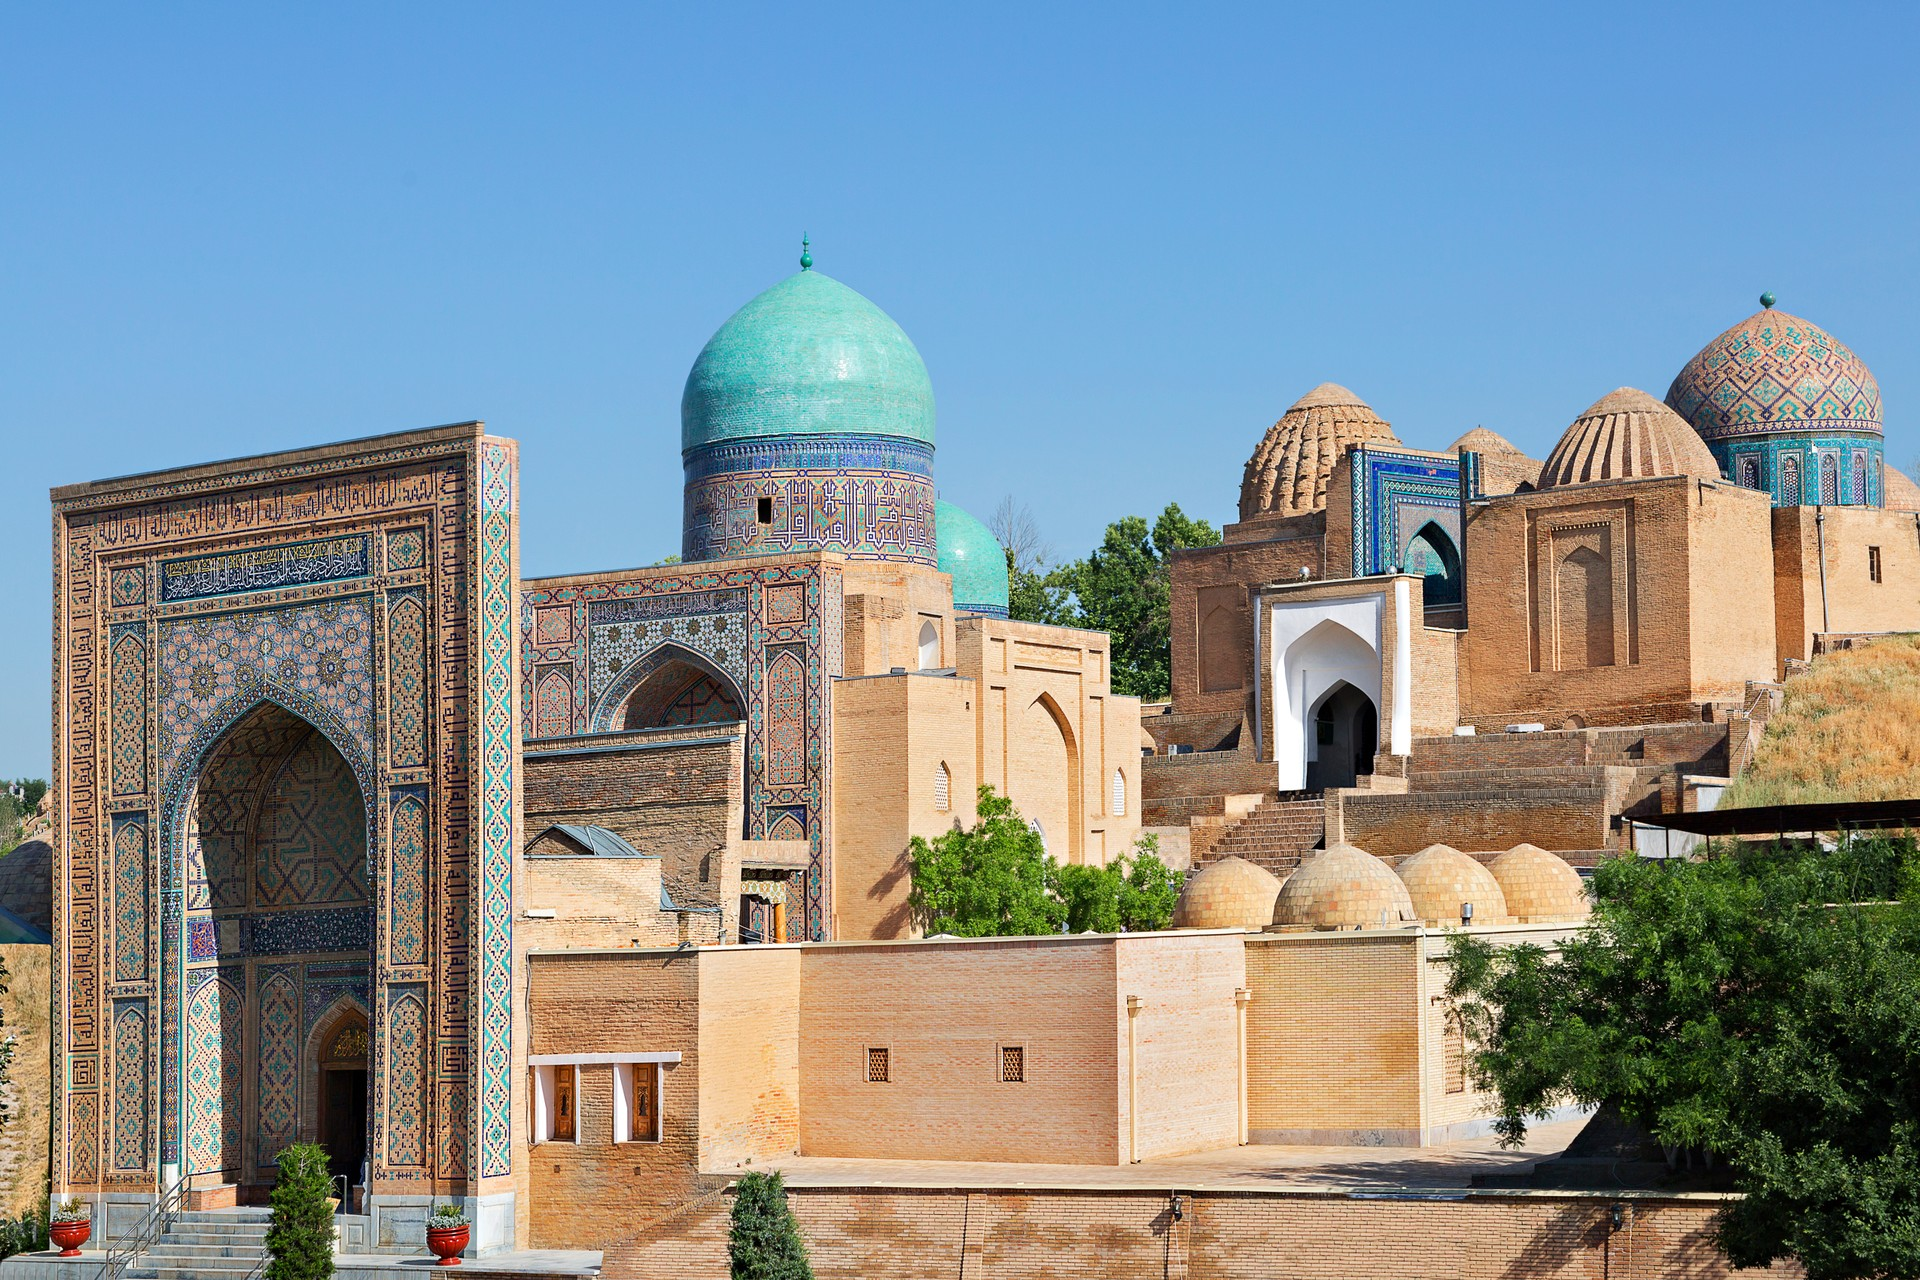 The beautiful buildings of Samarkand in Uzbekistan - a former Silk Route city